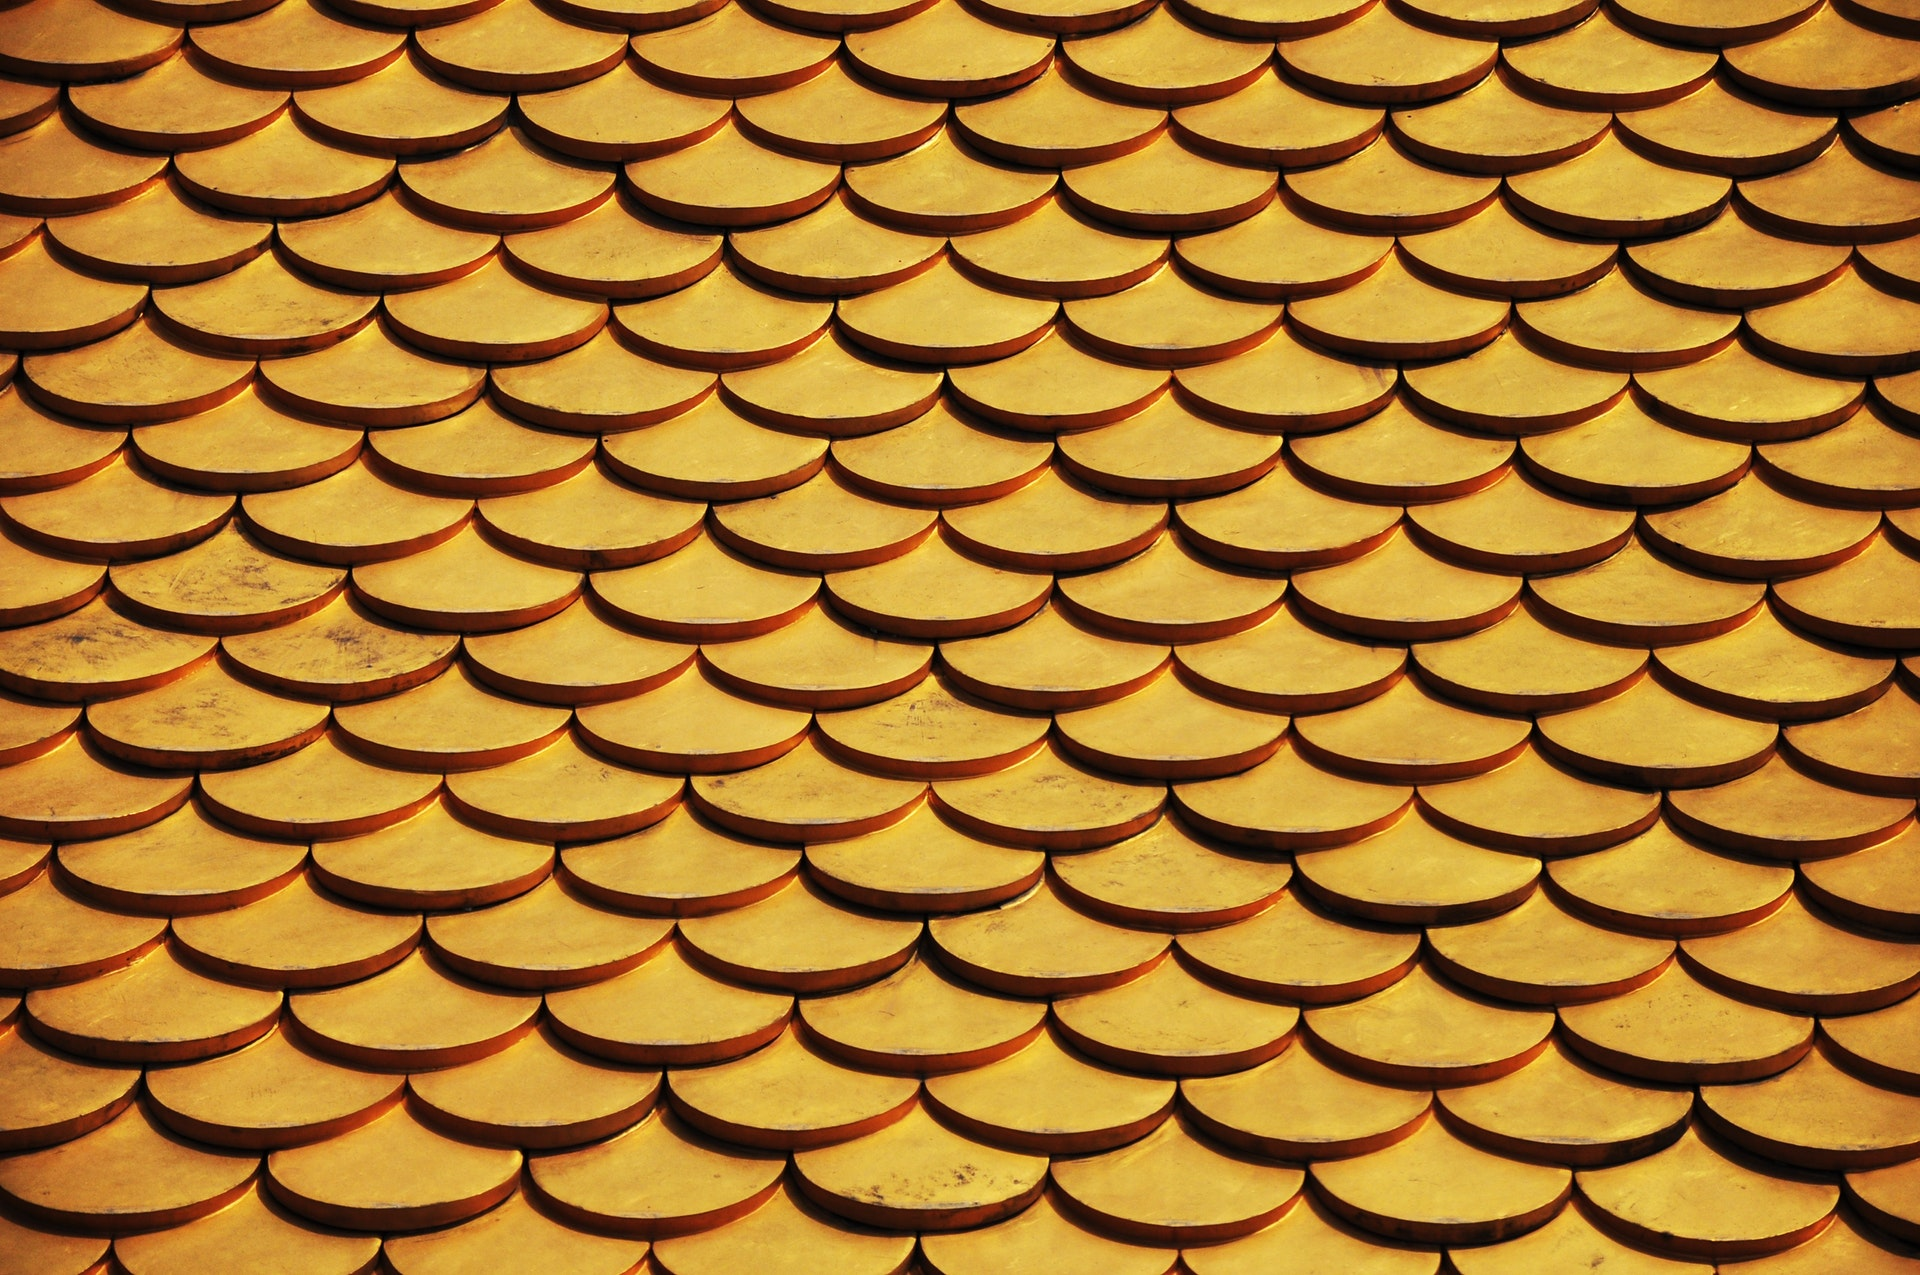 golden round shingles on roof